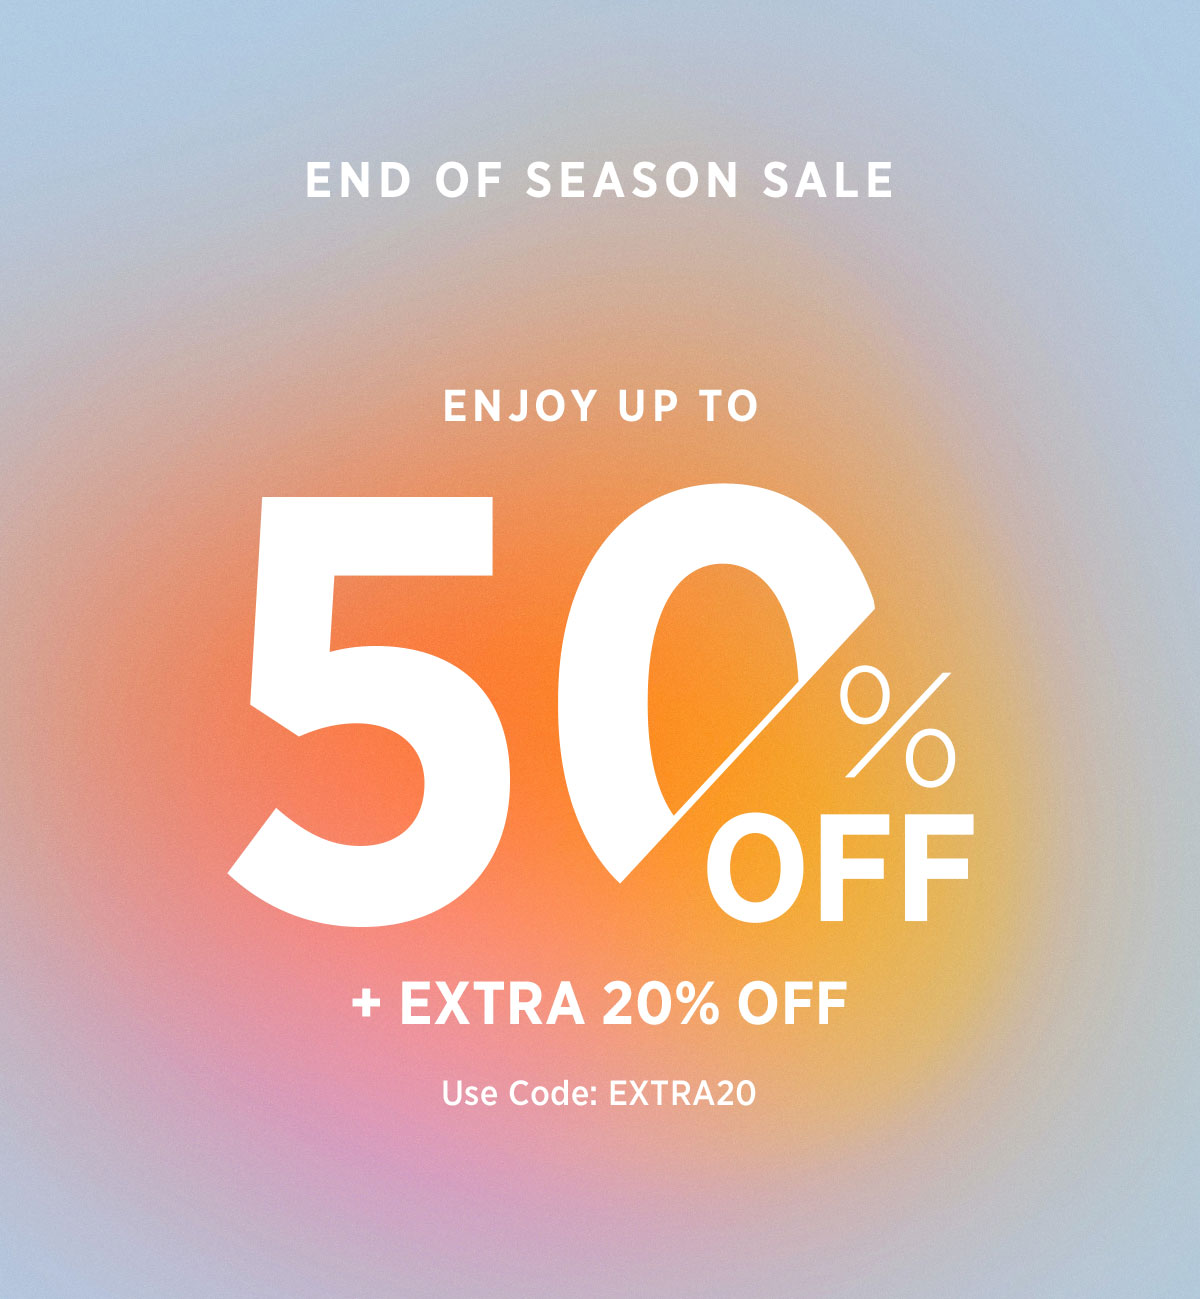 End Of Season Sale - Enjoy Up To 50% Off + Extra 20% Off - Use Code: EXTRA20